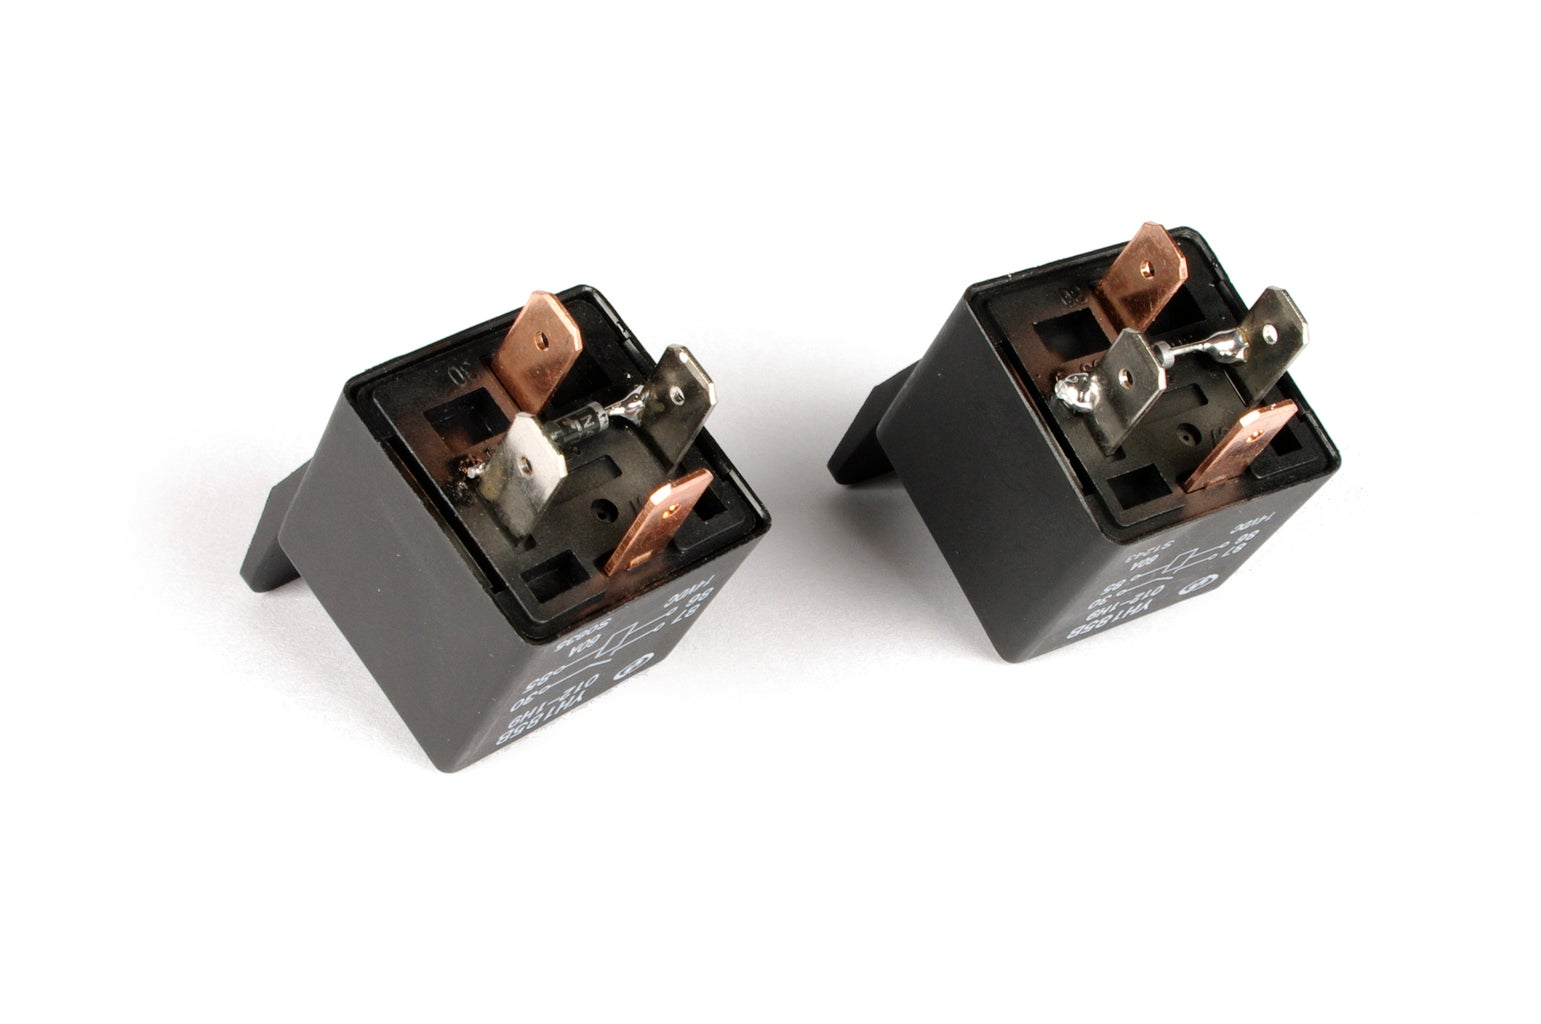 Snubber Diodes